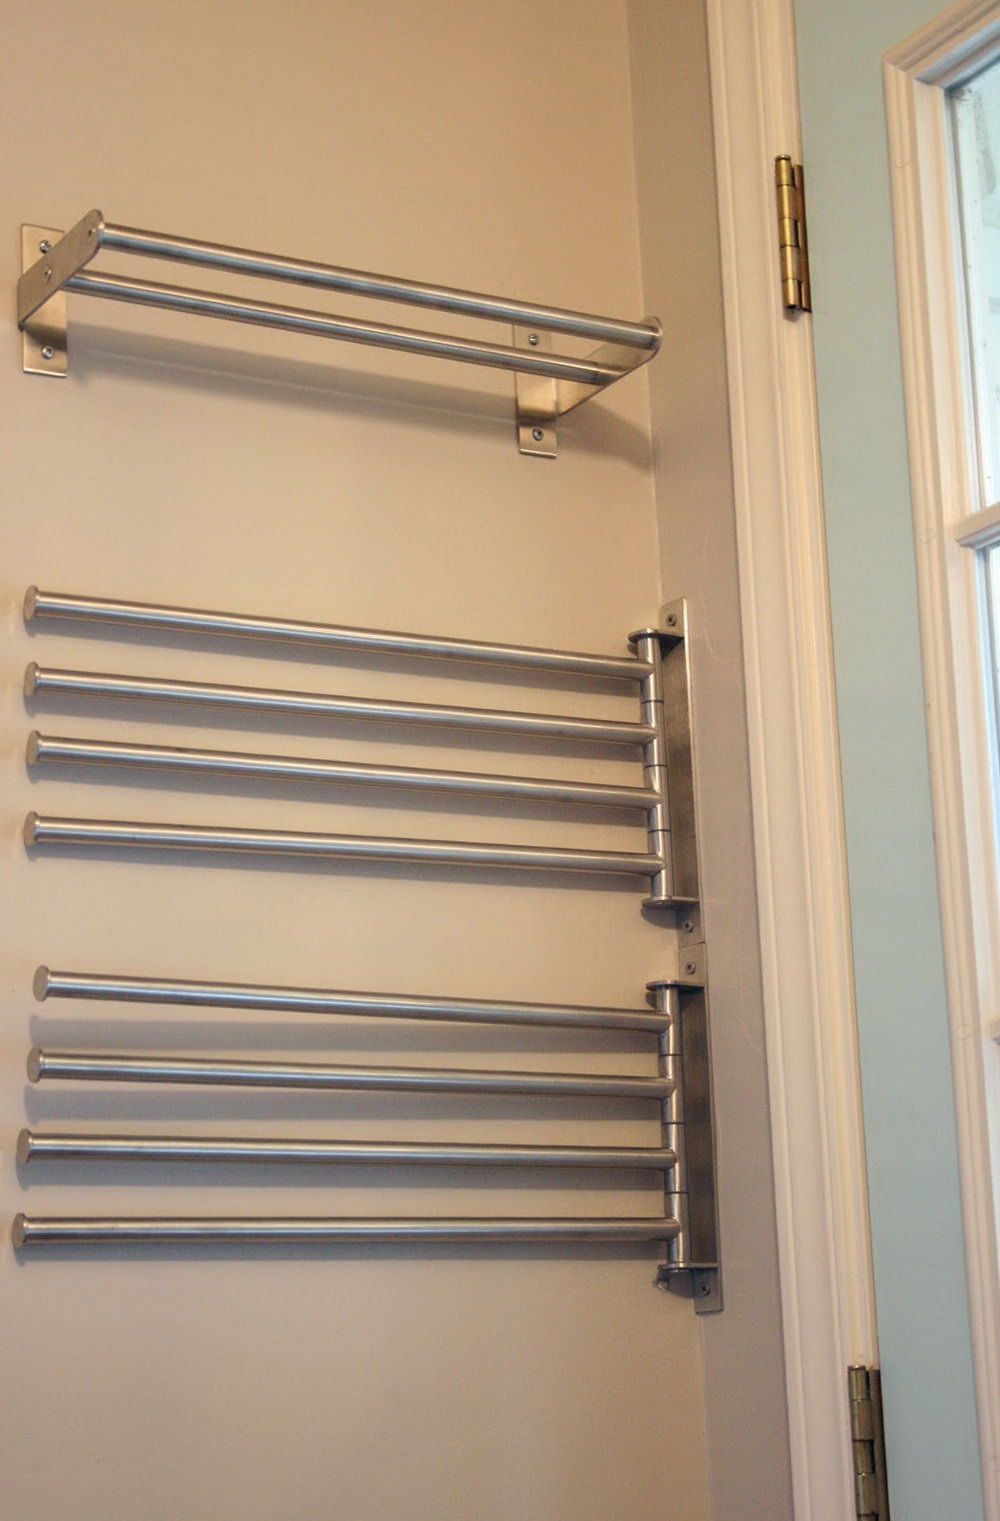 new drying racks for laundry rooms